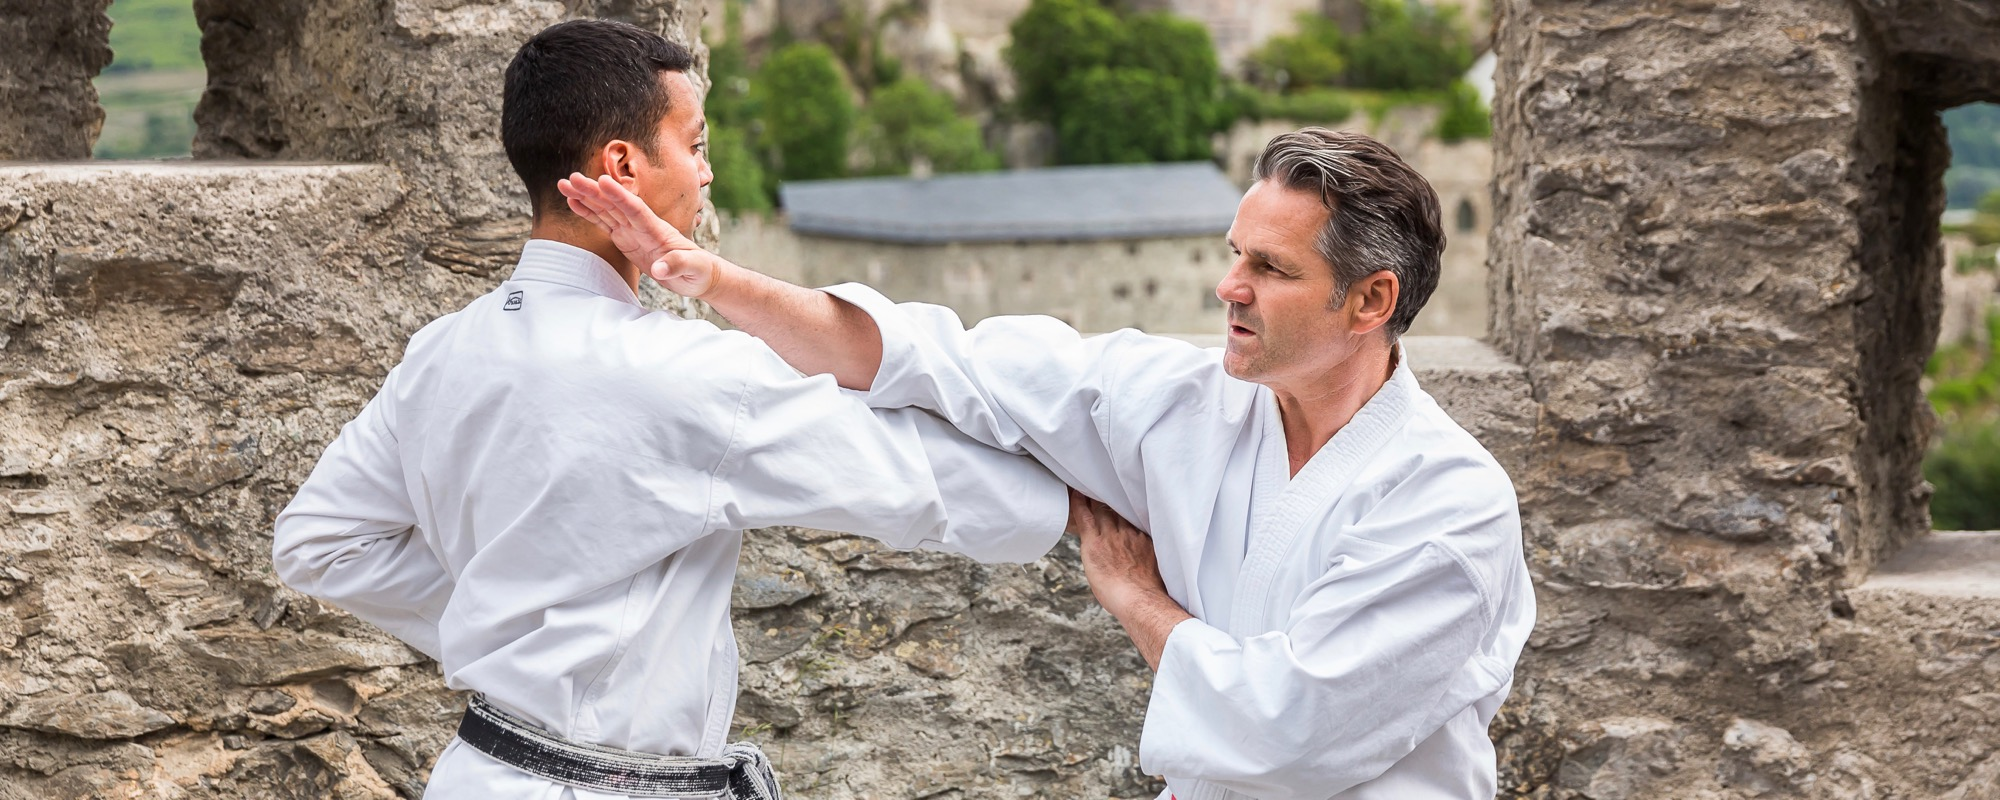 Olivier Knupfer 7e Dan Hugues Michaud 5e Dan Karate Club Valais Sion Suisse Switzerland